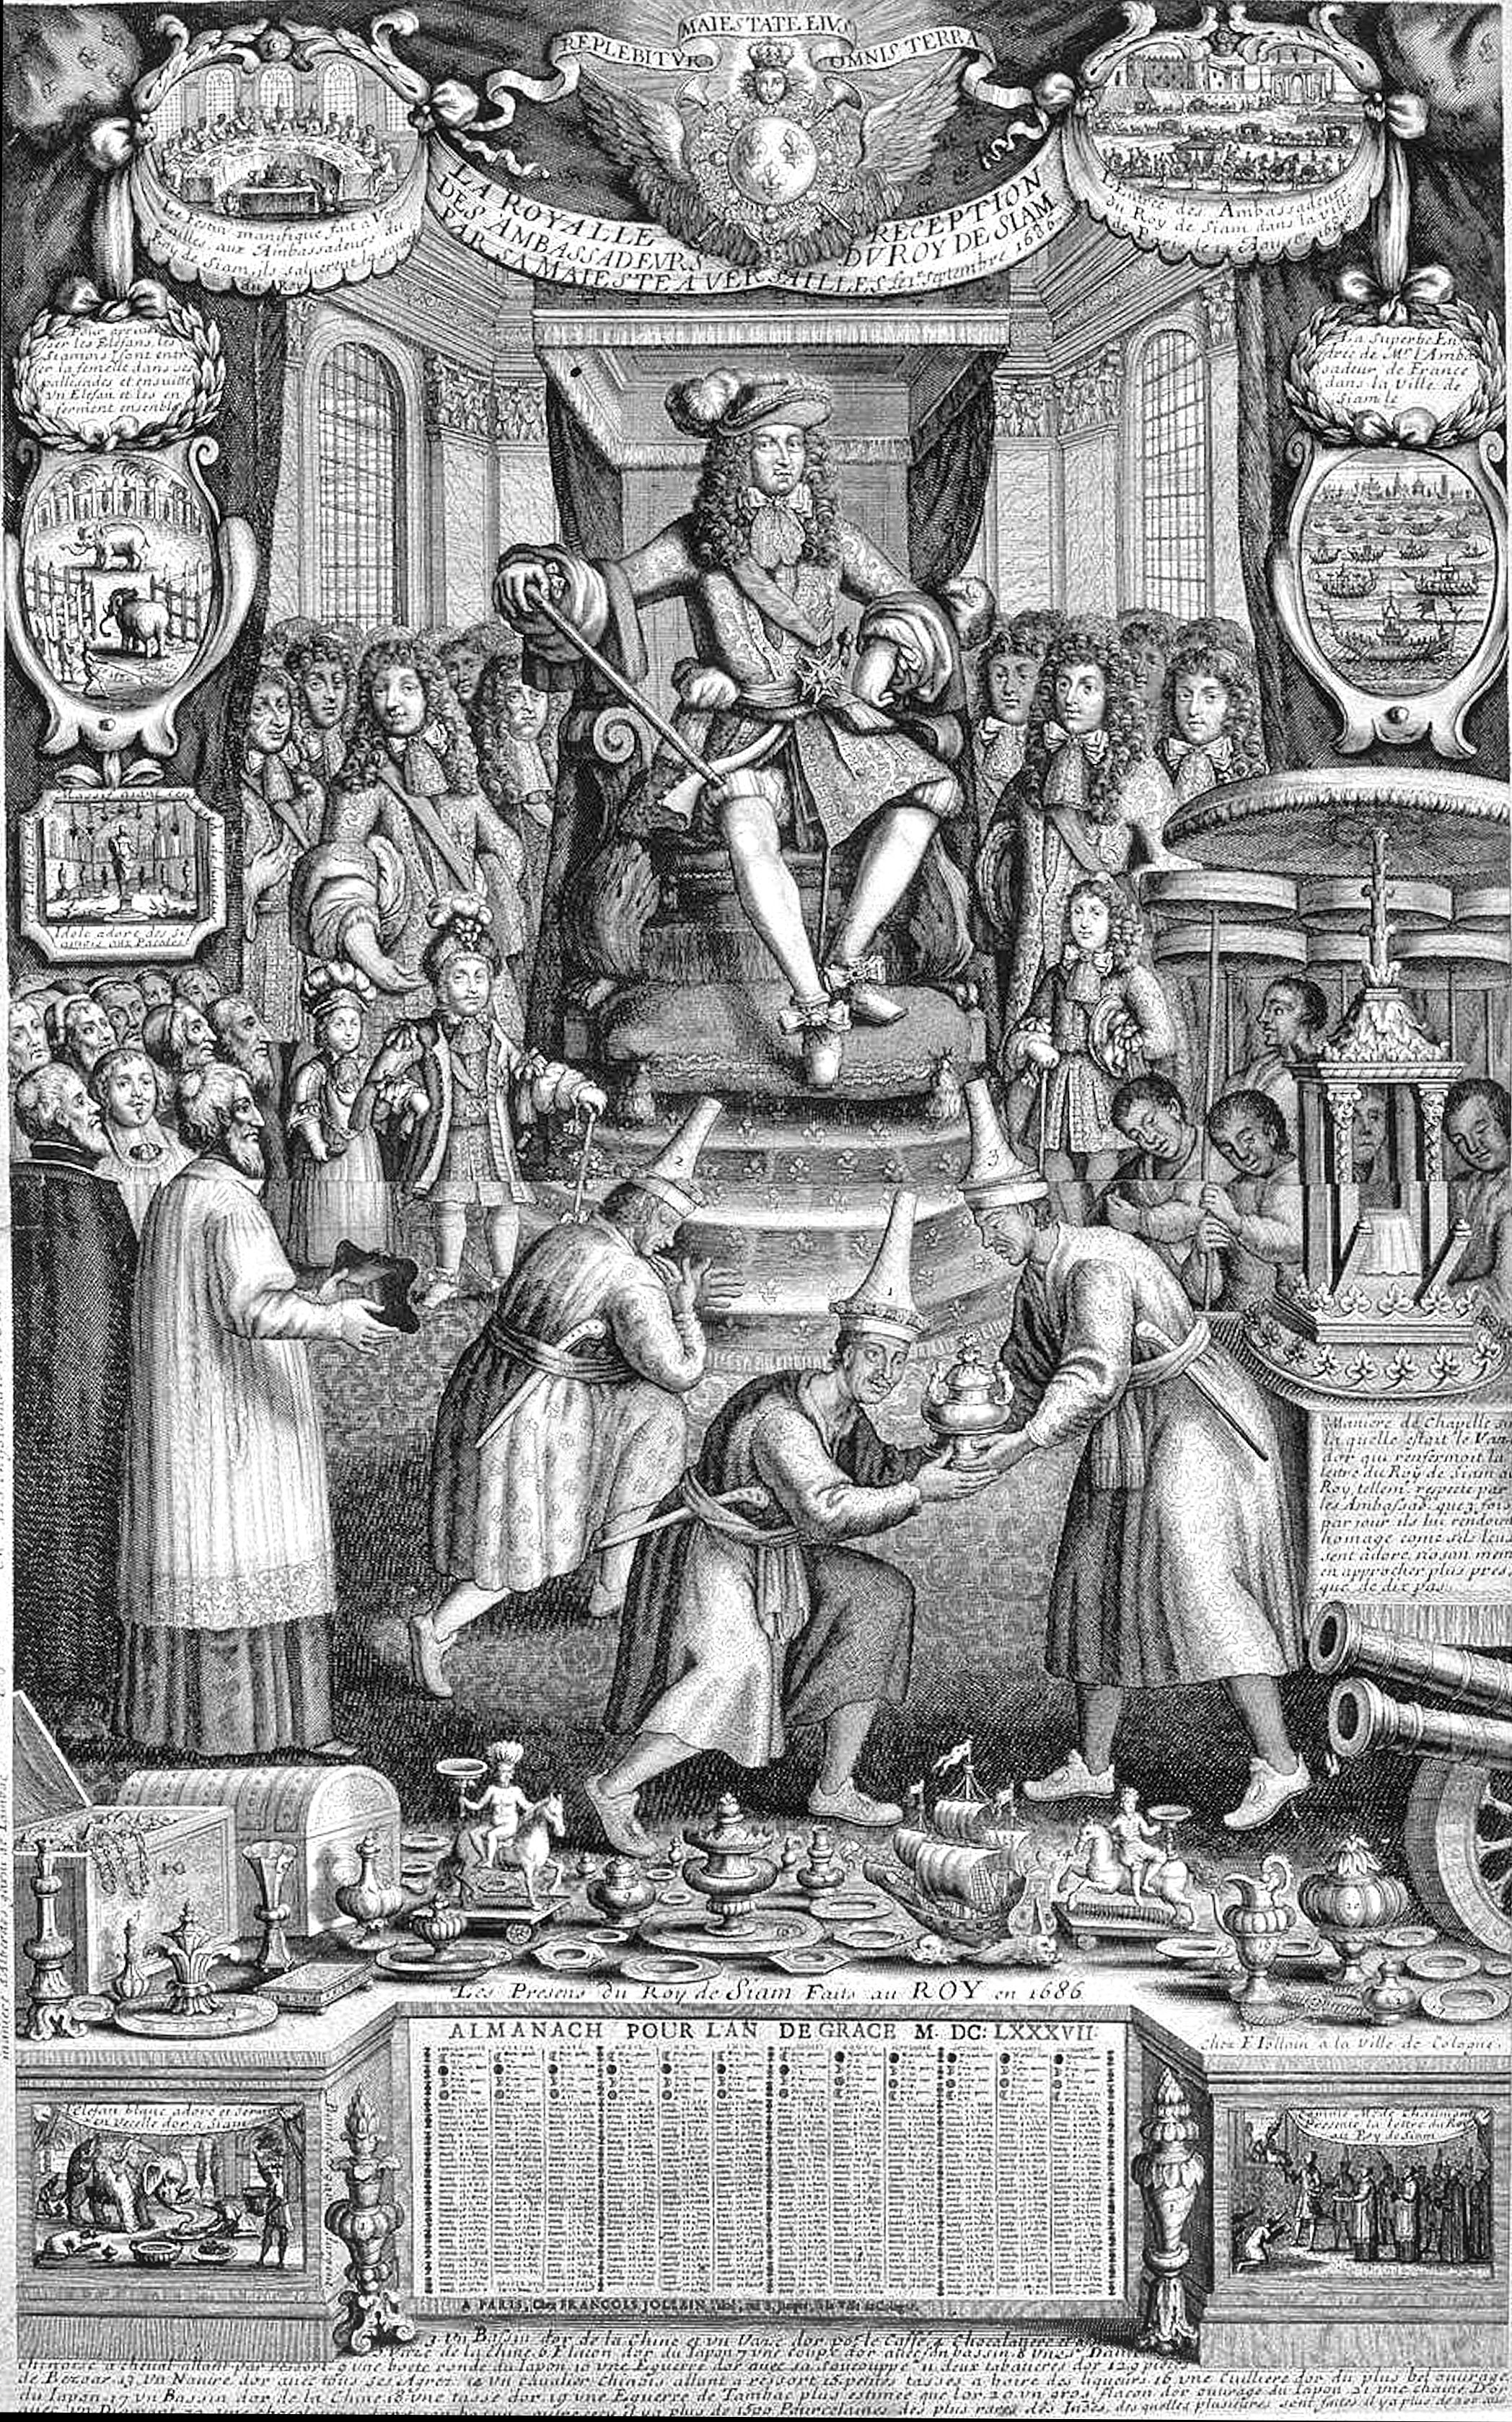 File:Almanach 1687 Kosa Pan with Louis XIV.jpg